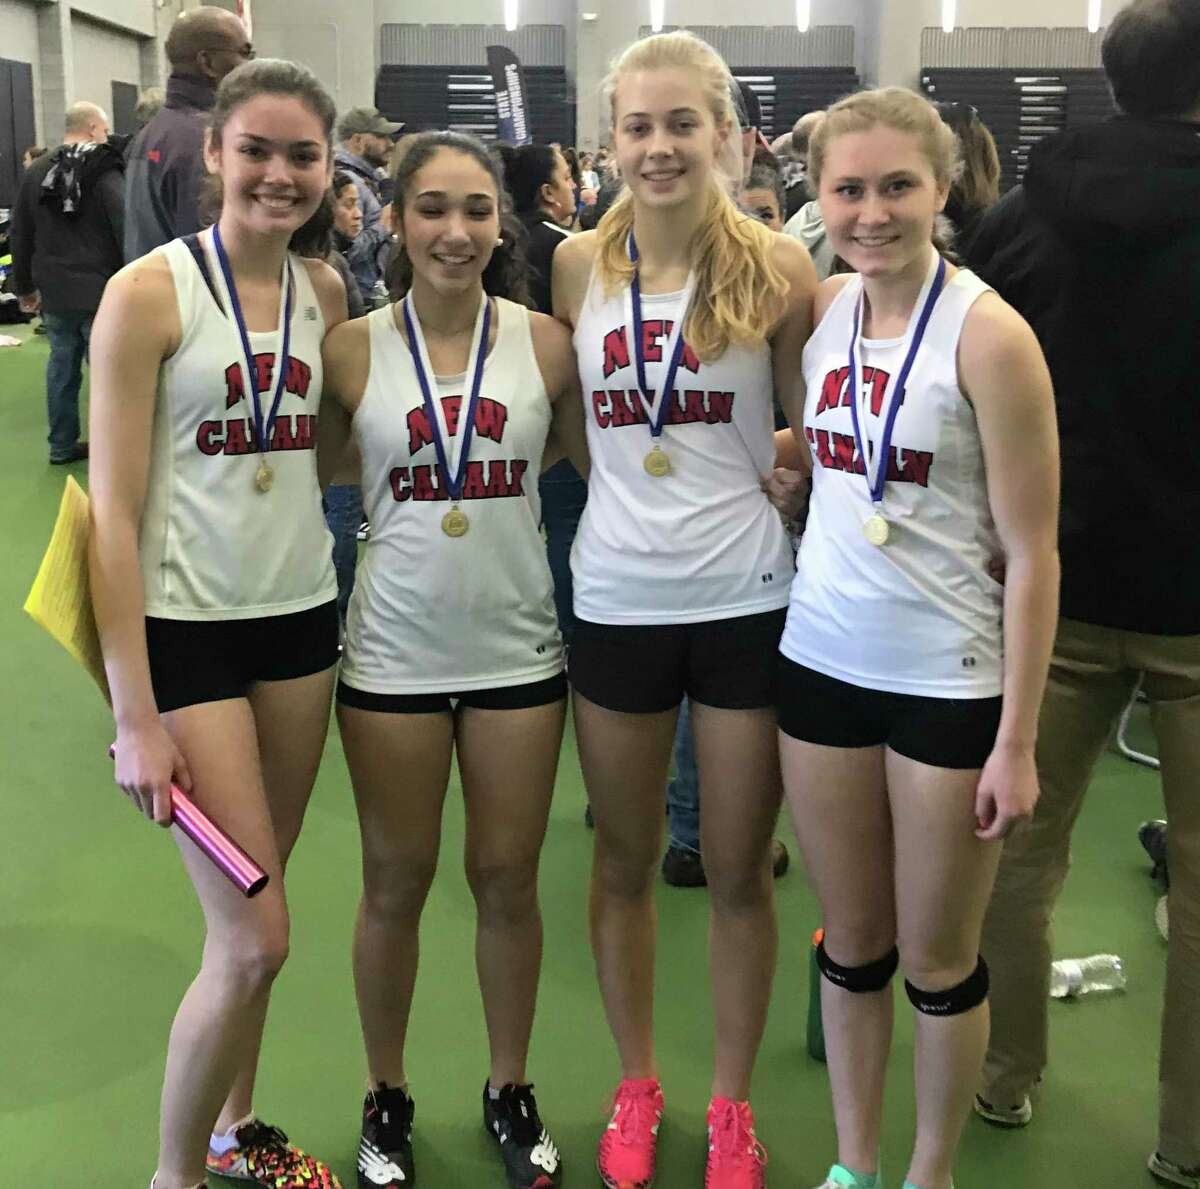 The New Canaan 4x800 relay team of, from left, Lauren Doherty, Ella Gibb, Emma Ognibene and Sophie Curcio with their medals after winning at the CIAC Class L girls track and field championships in New Haven on Saturday, Feb. 15, 2020.